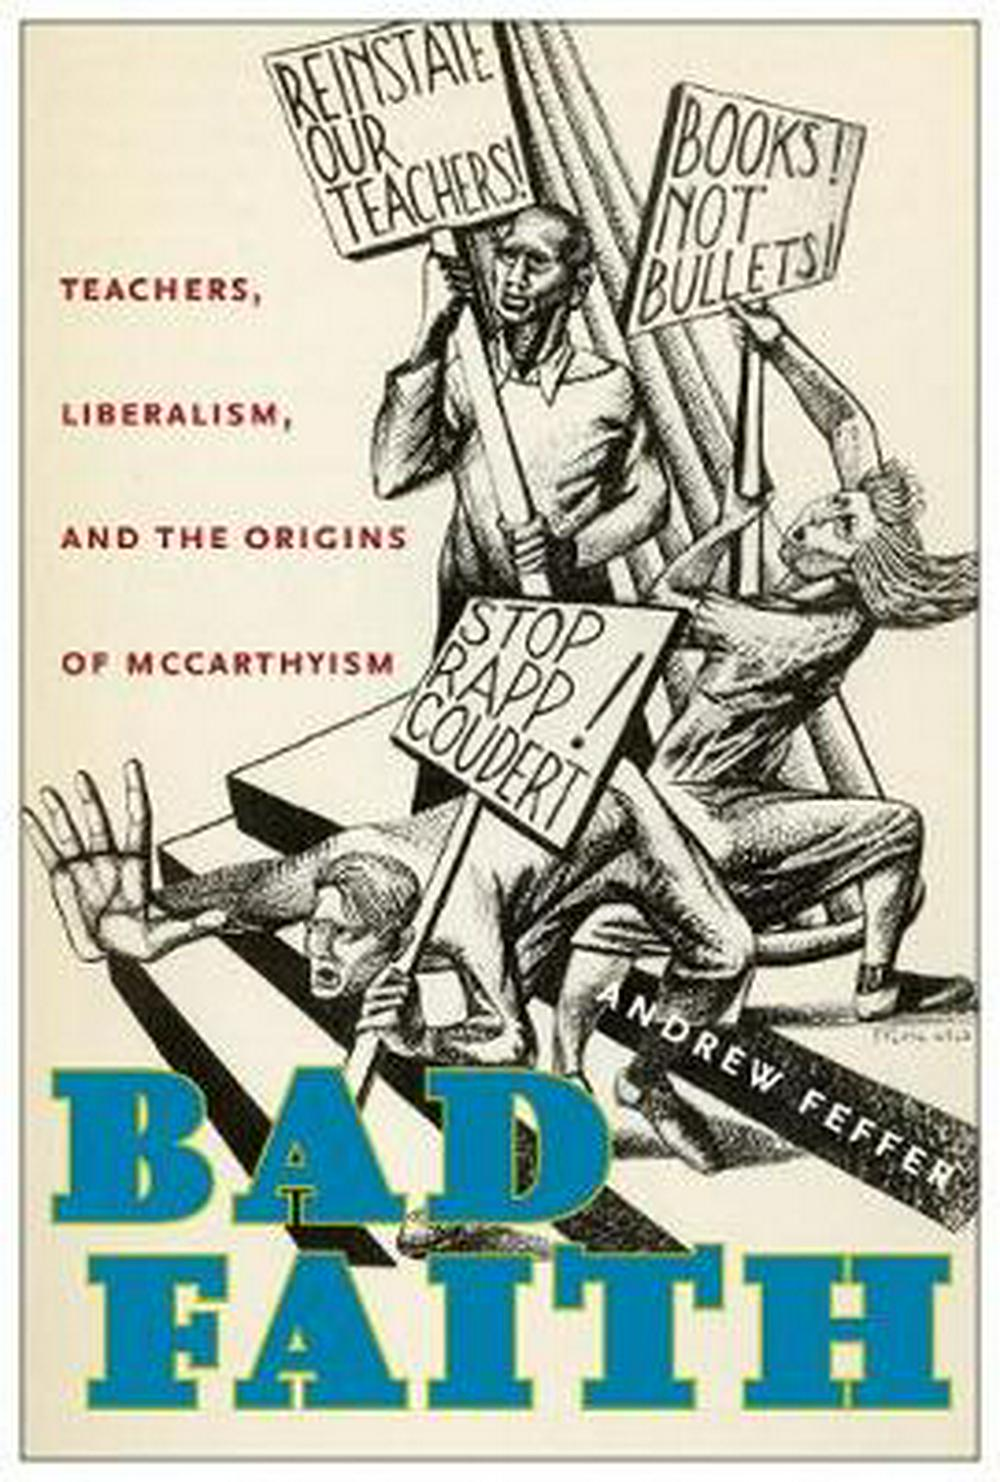 Bad Faith: Teachers, Liberalism, and the Origins of McCarthyism  By Andrew Feffer Fordham University Press, 2019 320 pages